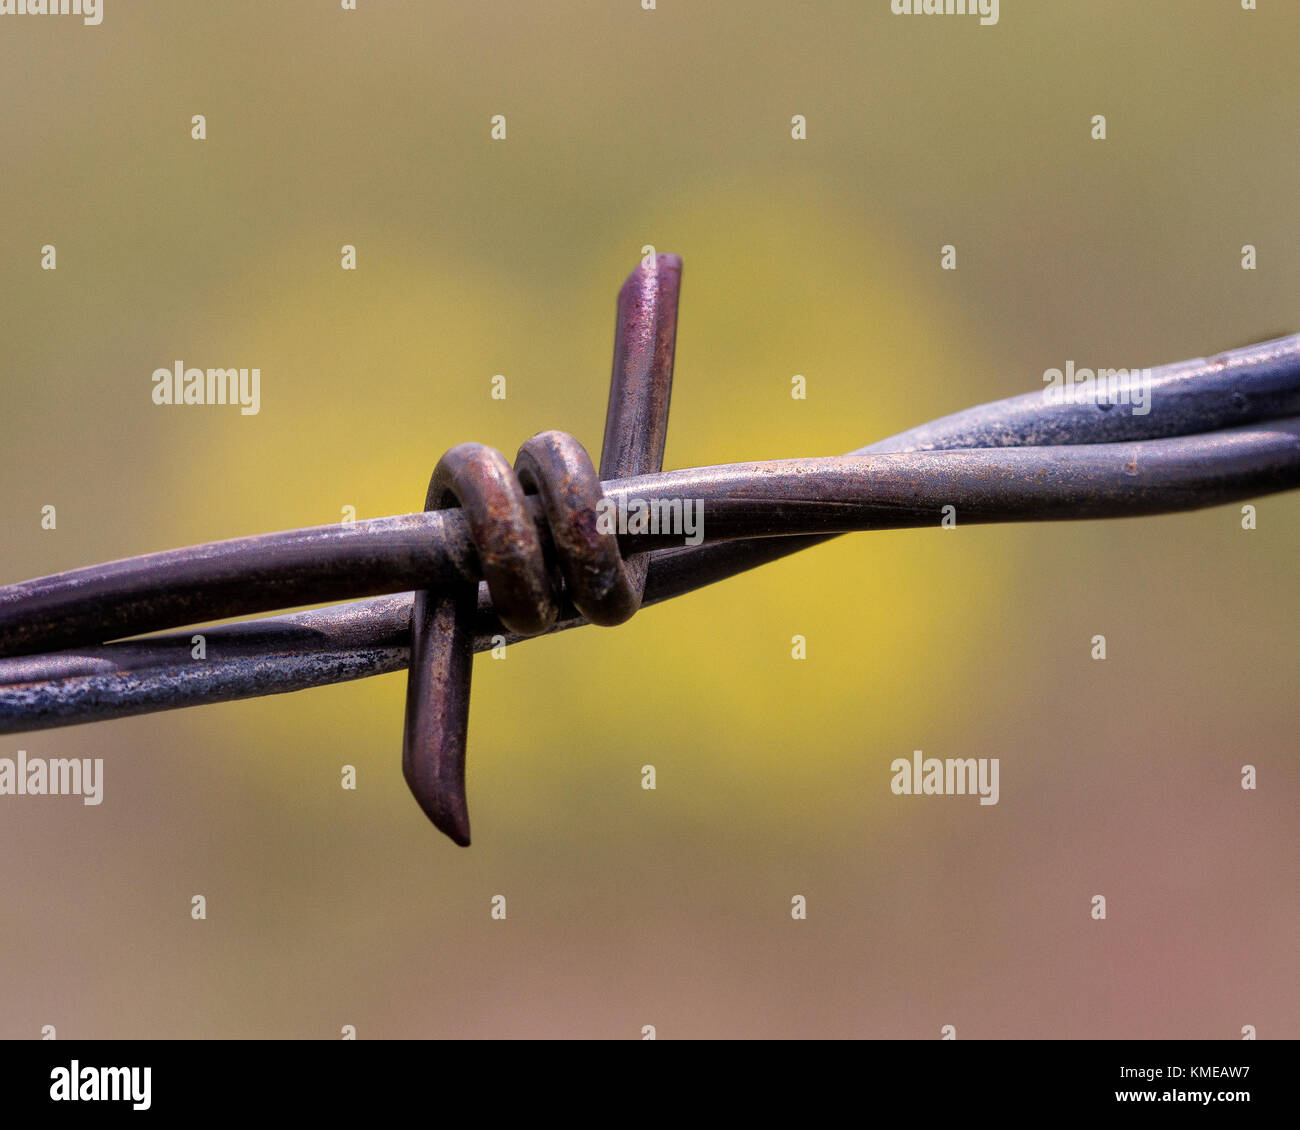 Agricultural Fencing Stock Photos Electric Accessories 7 Strand Fence Wire A Single Of Barbed Image